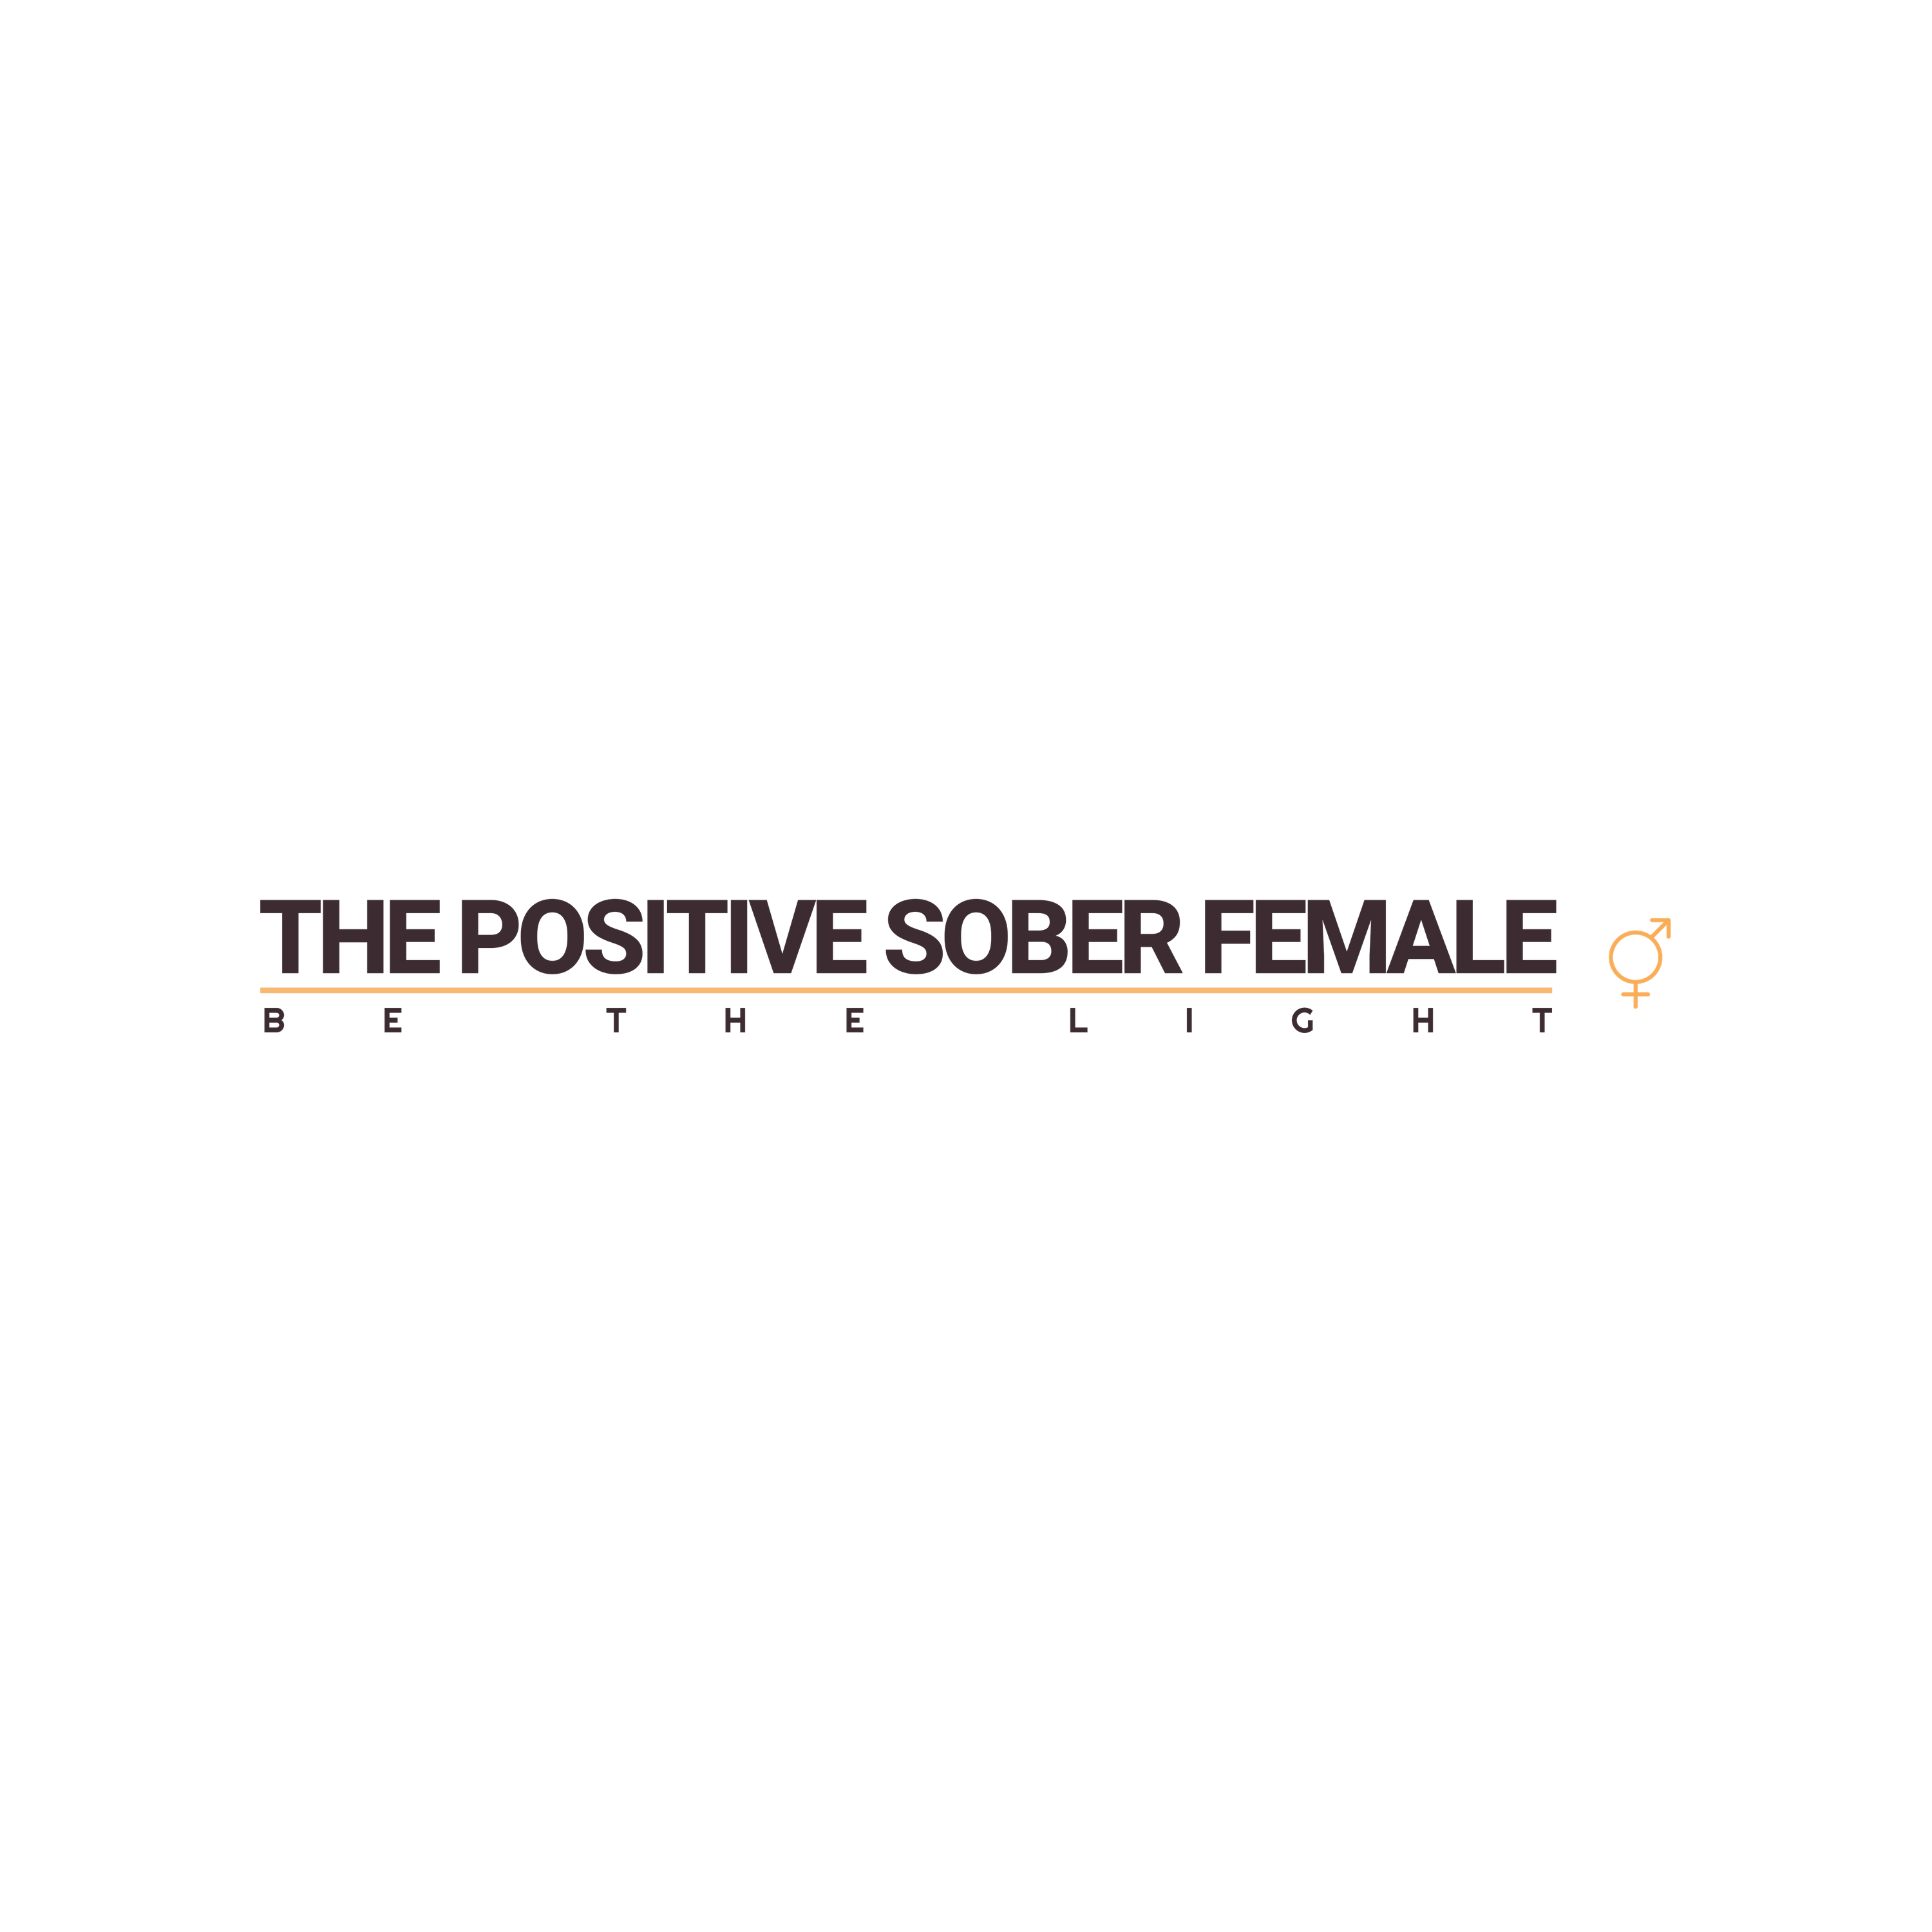 the positive sober female